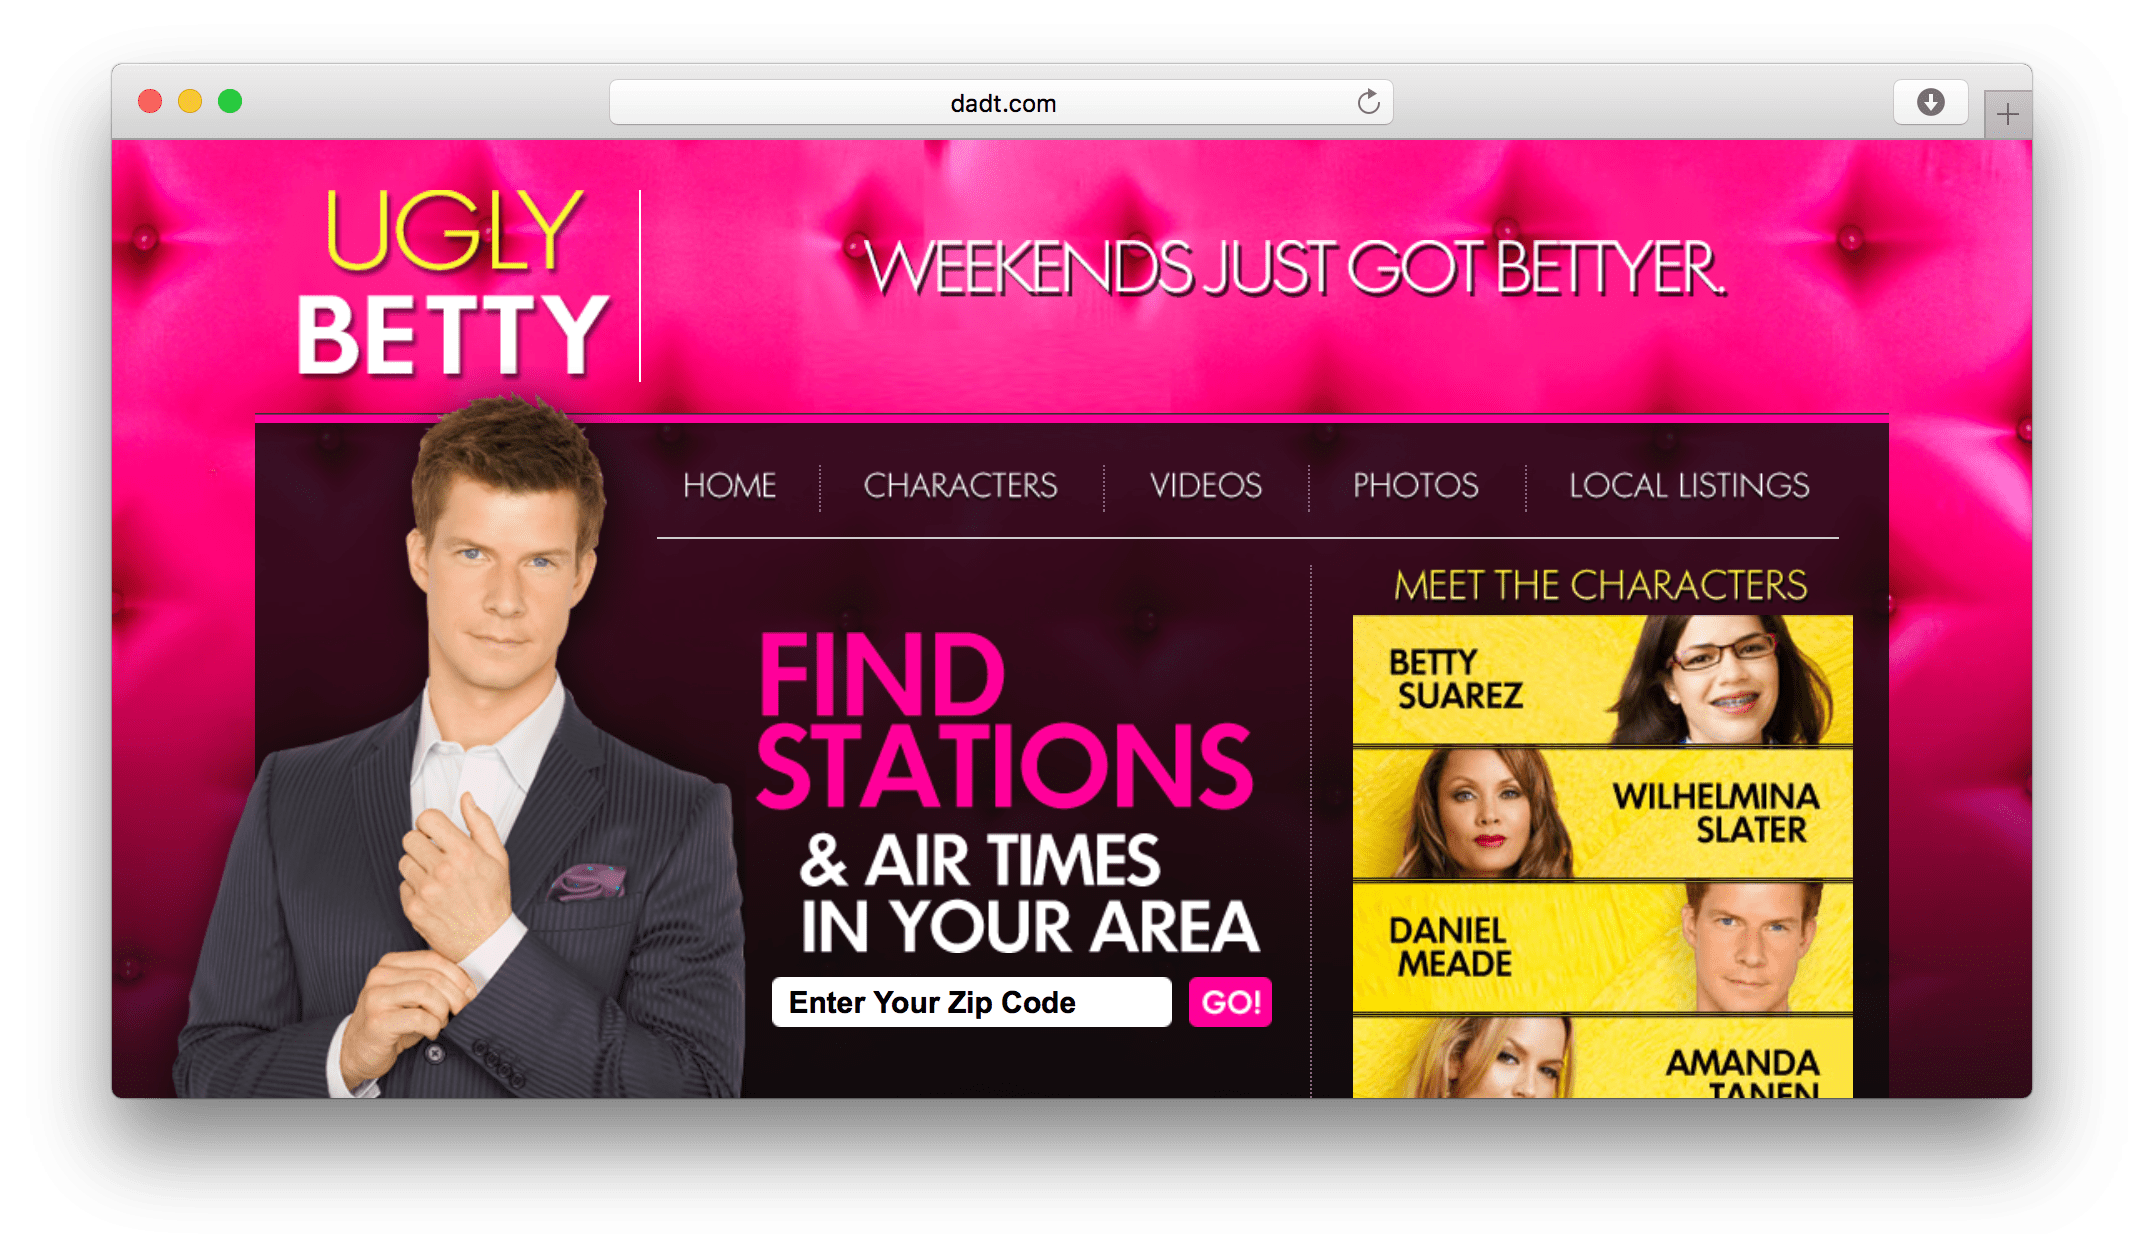 Ugly Betty website screenshot